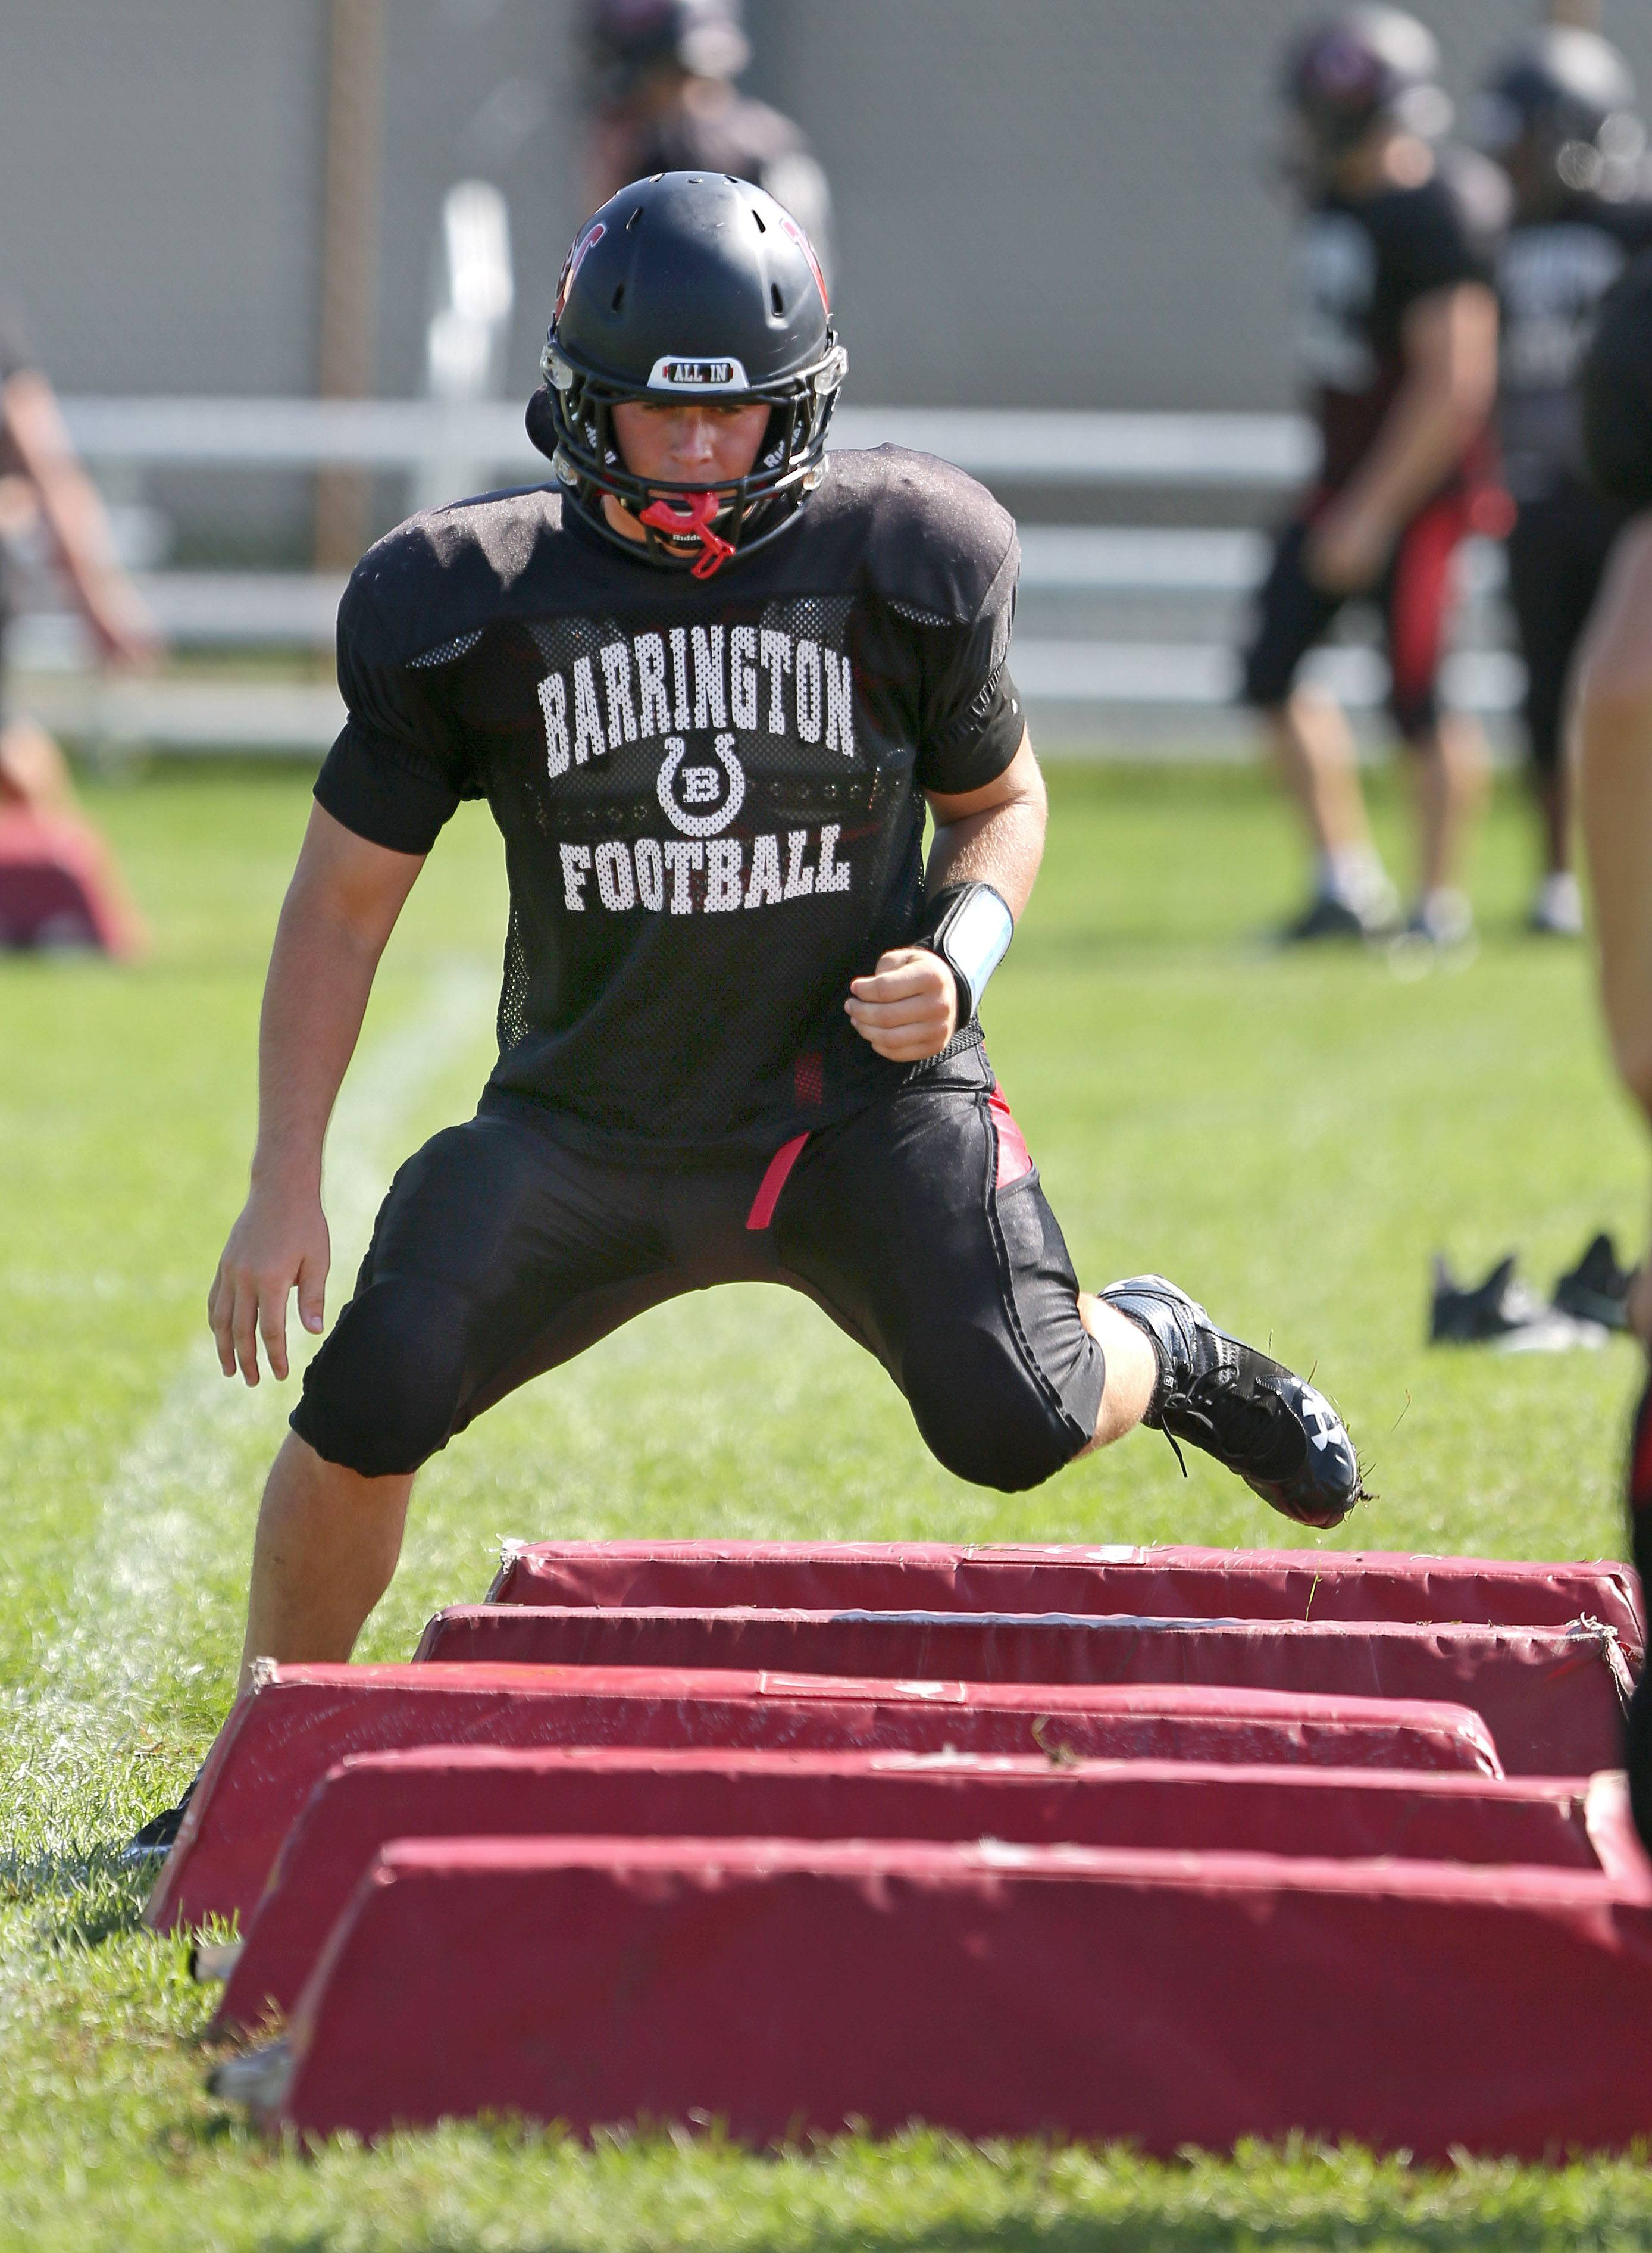 Senior linebacker Jake Coon goes through drills on Wednesday at Barrington.